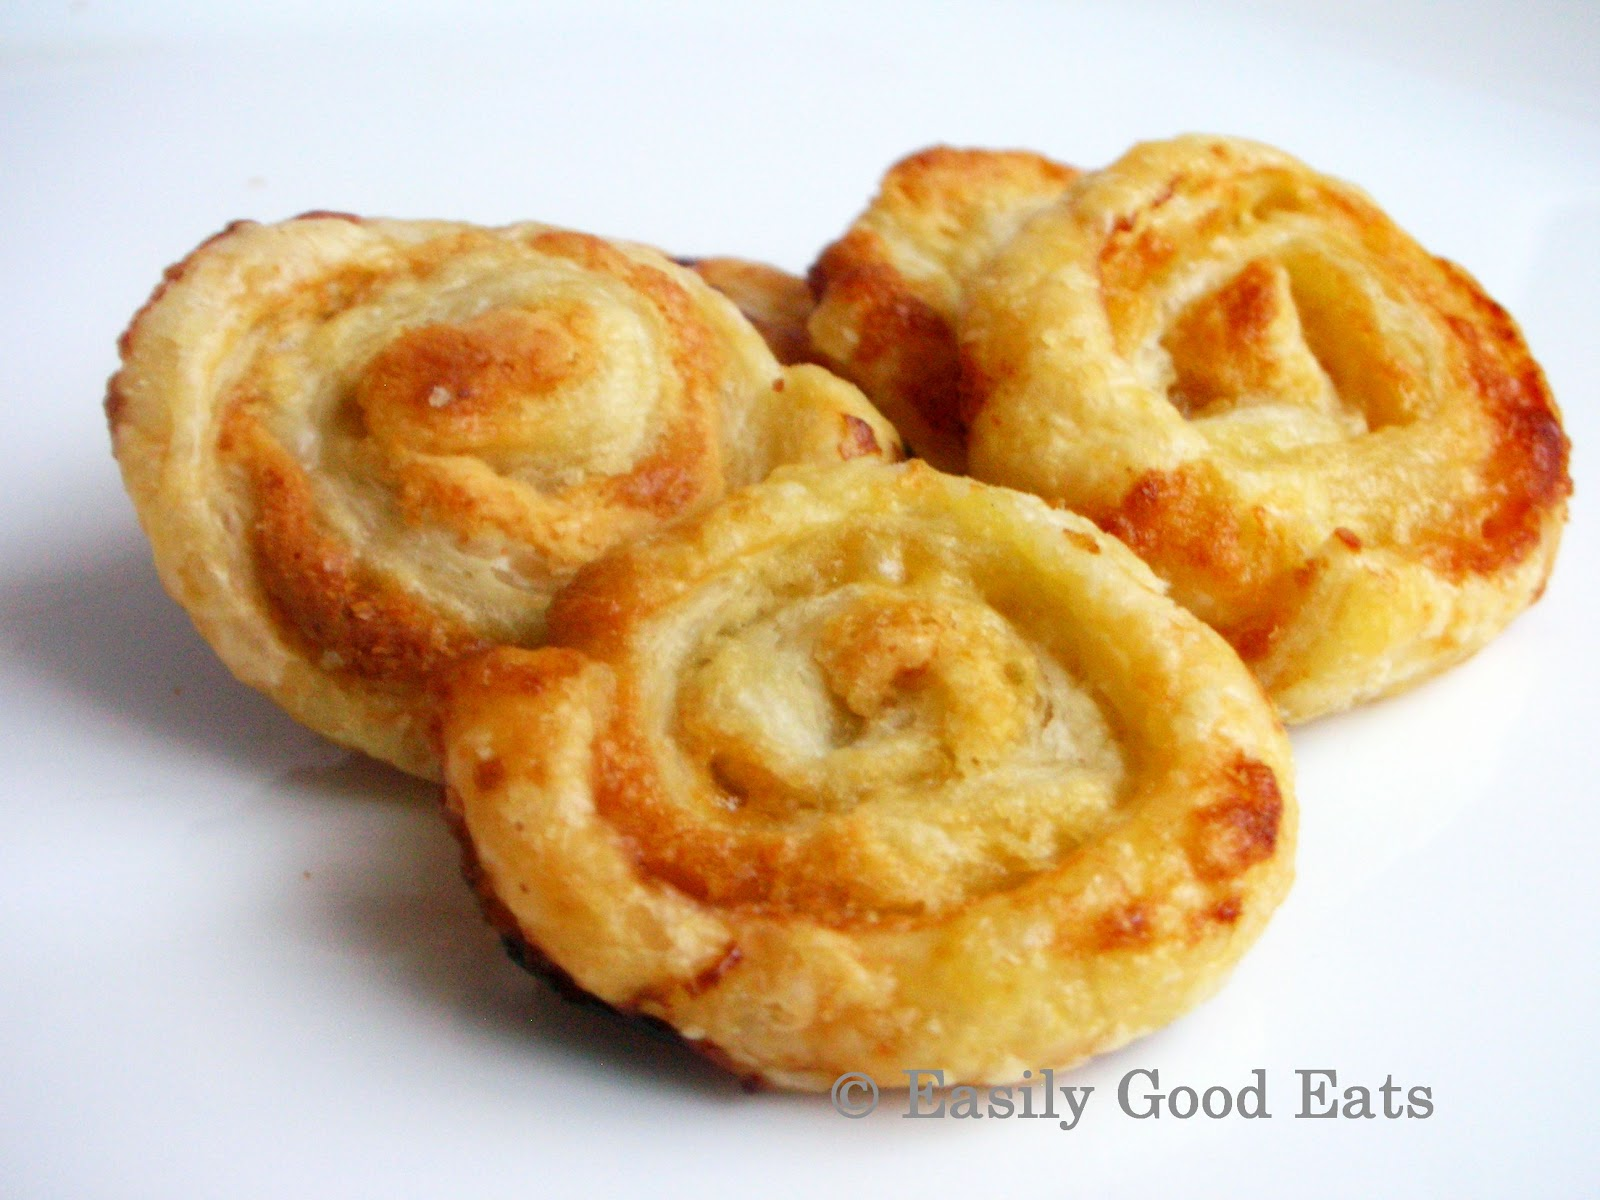 Easily Good Eats: Puff Pastry White Chocolate Cookies Recipe